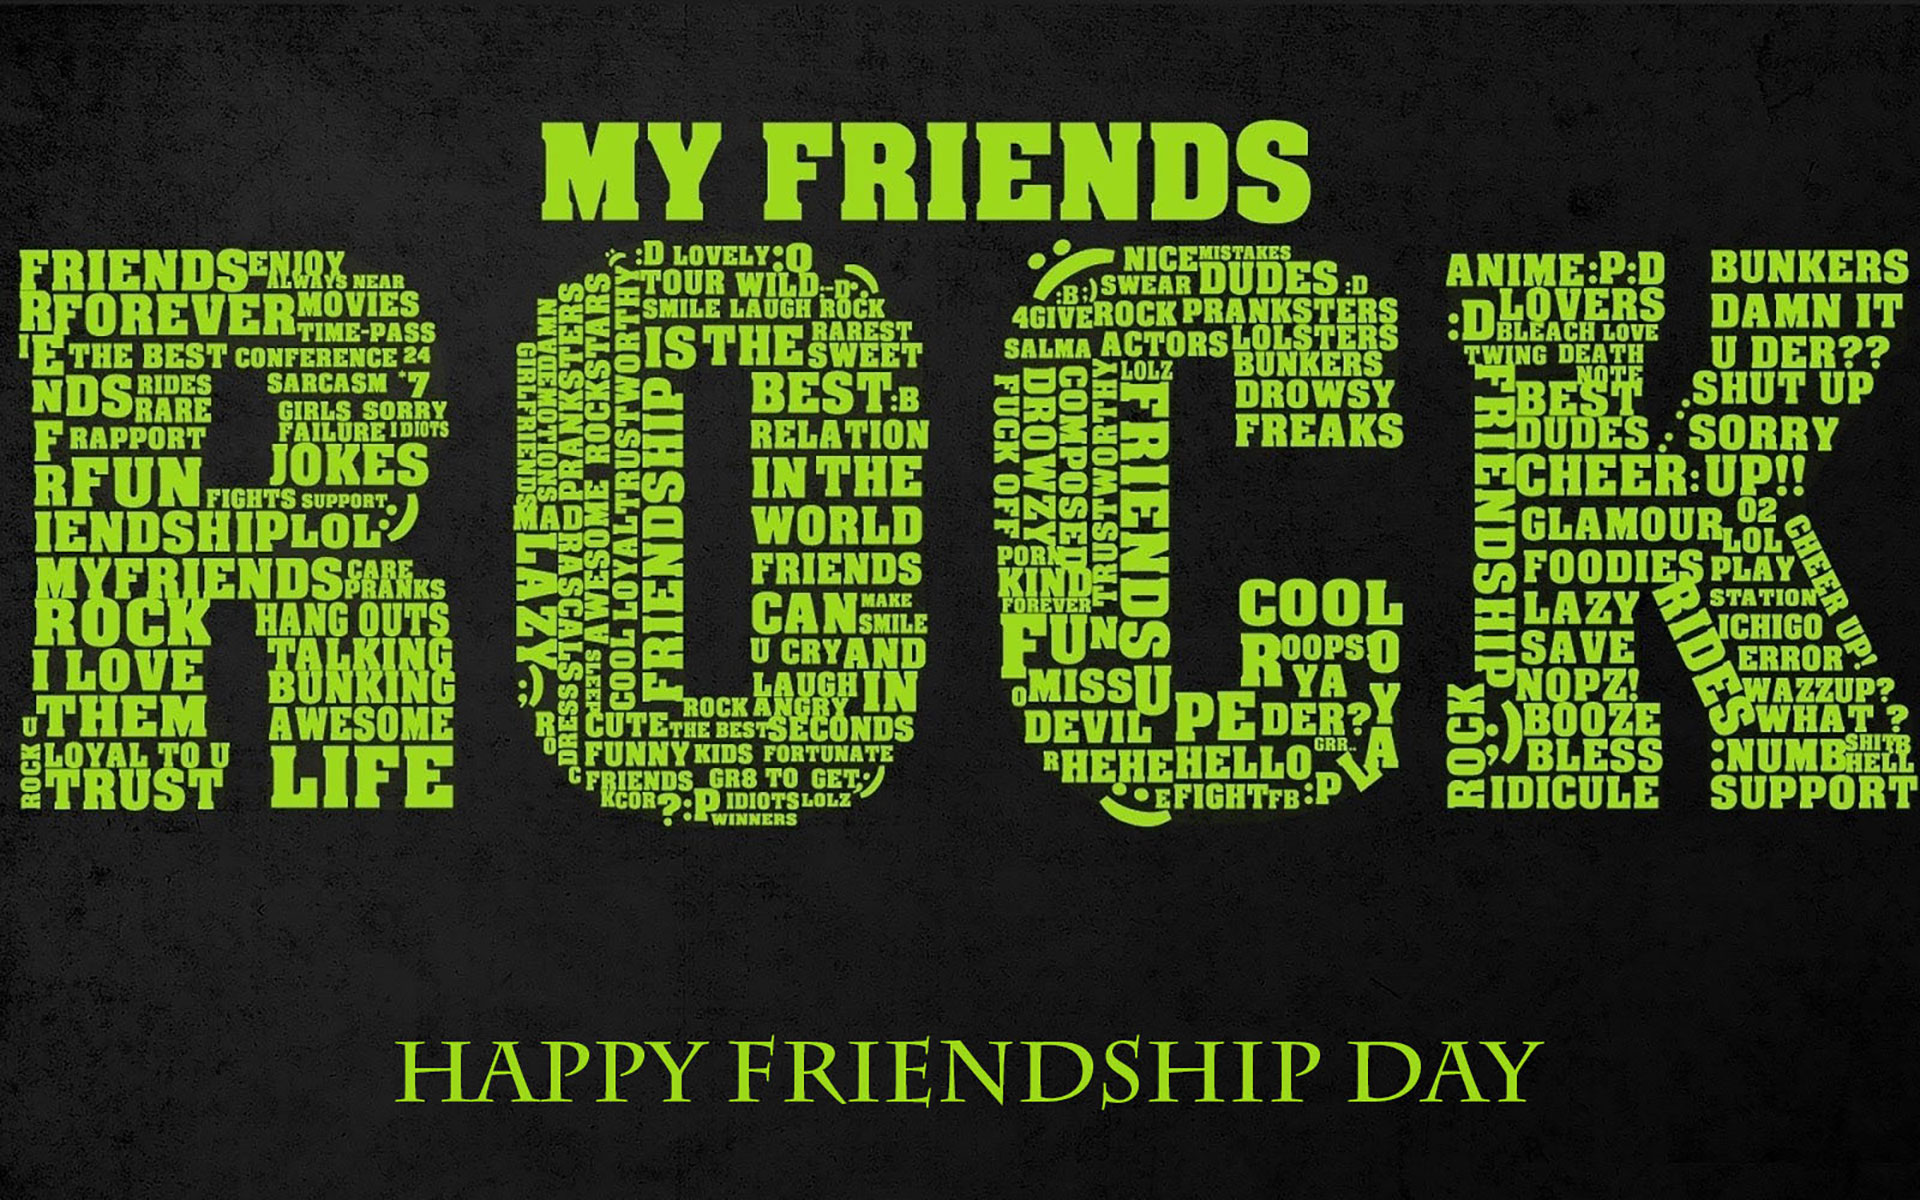 Amazing Quotes About Friendship 2017 Friendship Day Wishes Quotes Sms Sayings Messages Whatsapp